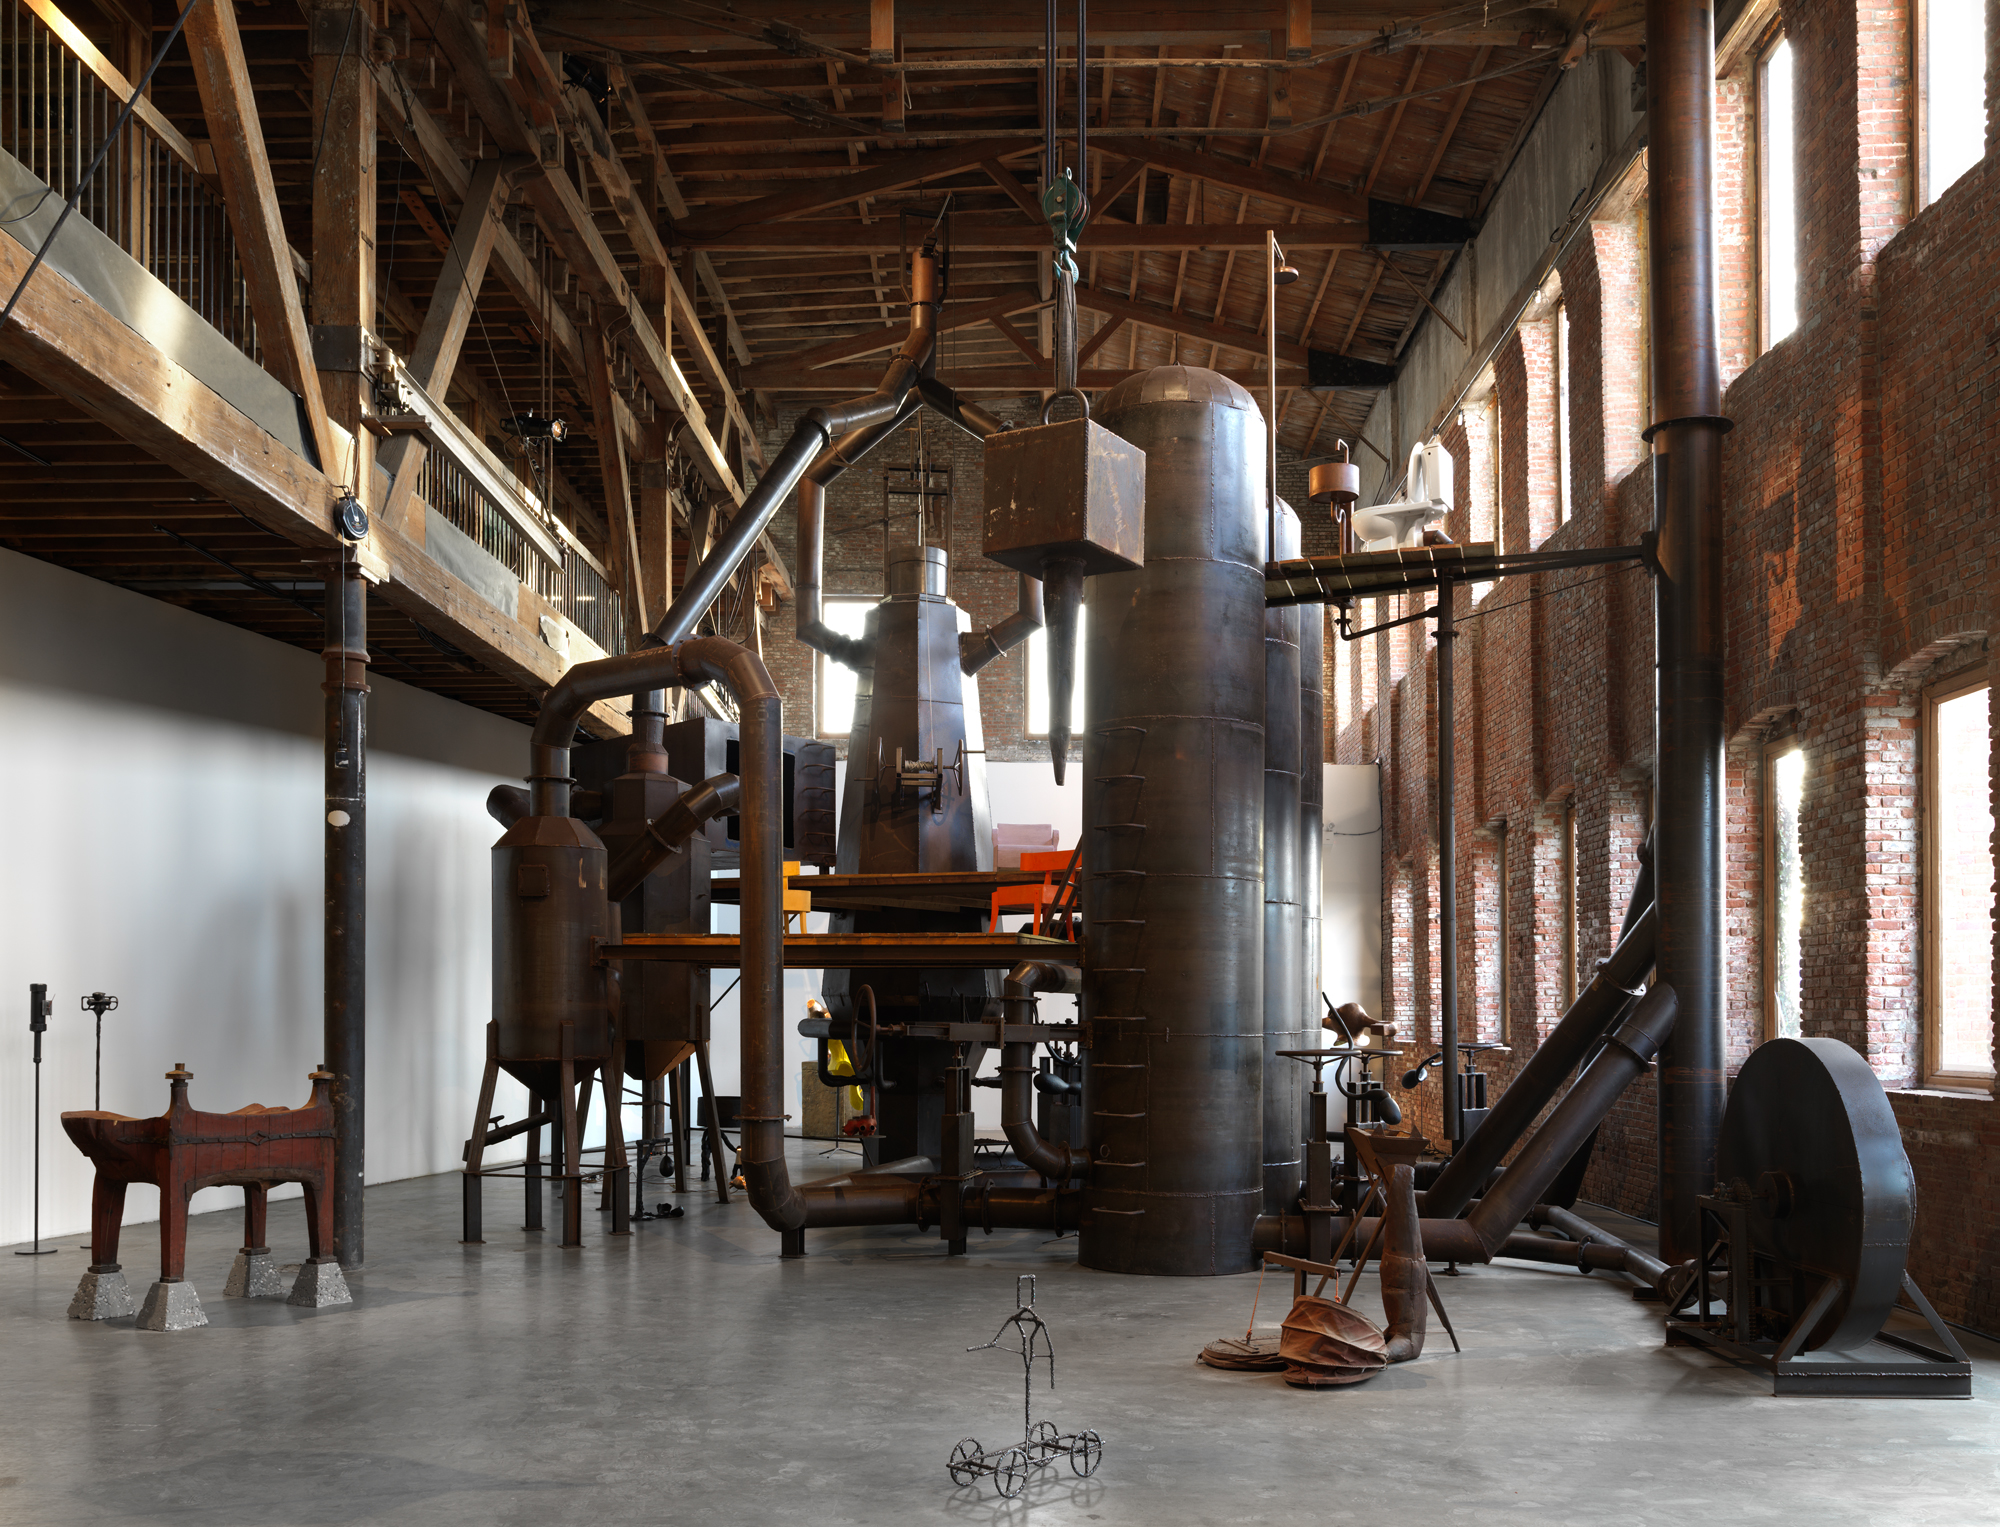 Joep van Lieshout's 40-Foot 'Blast Furnace' Heads to Art Omi in Upstate New York for Two-Year Sojourn